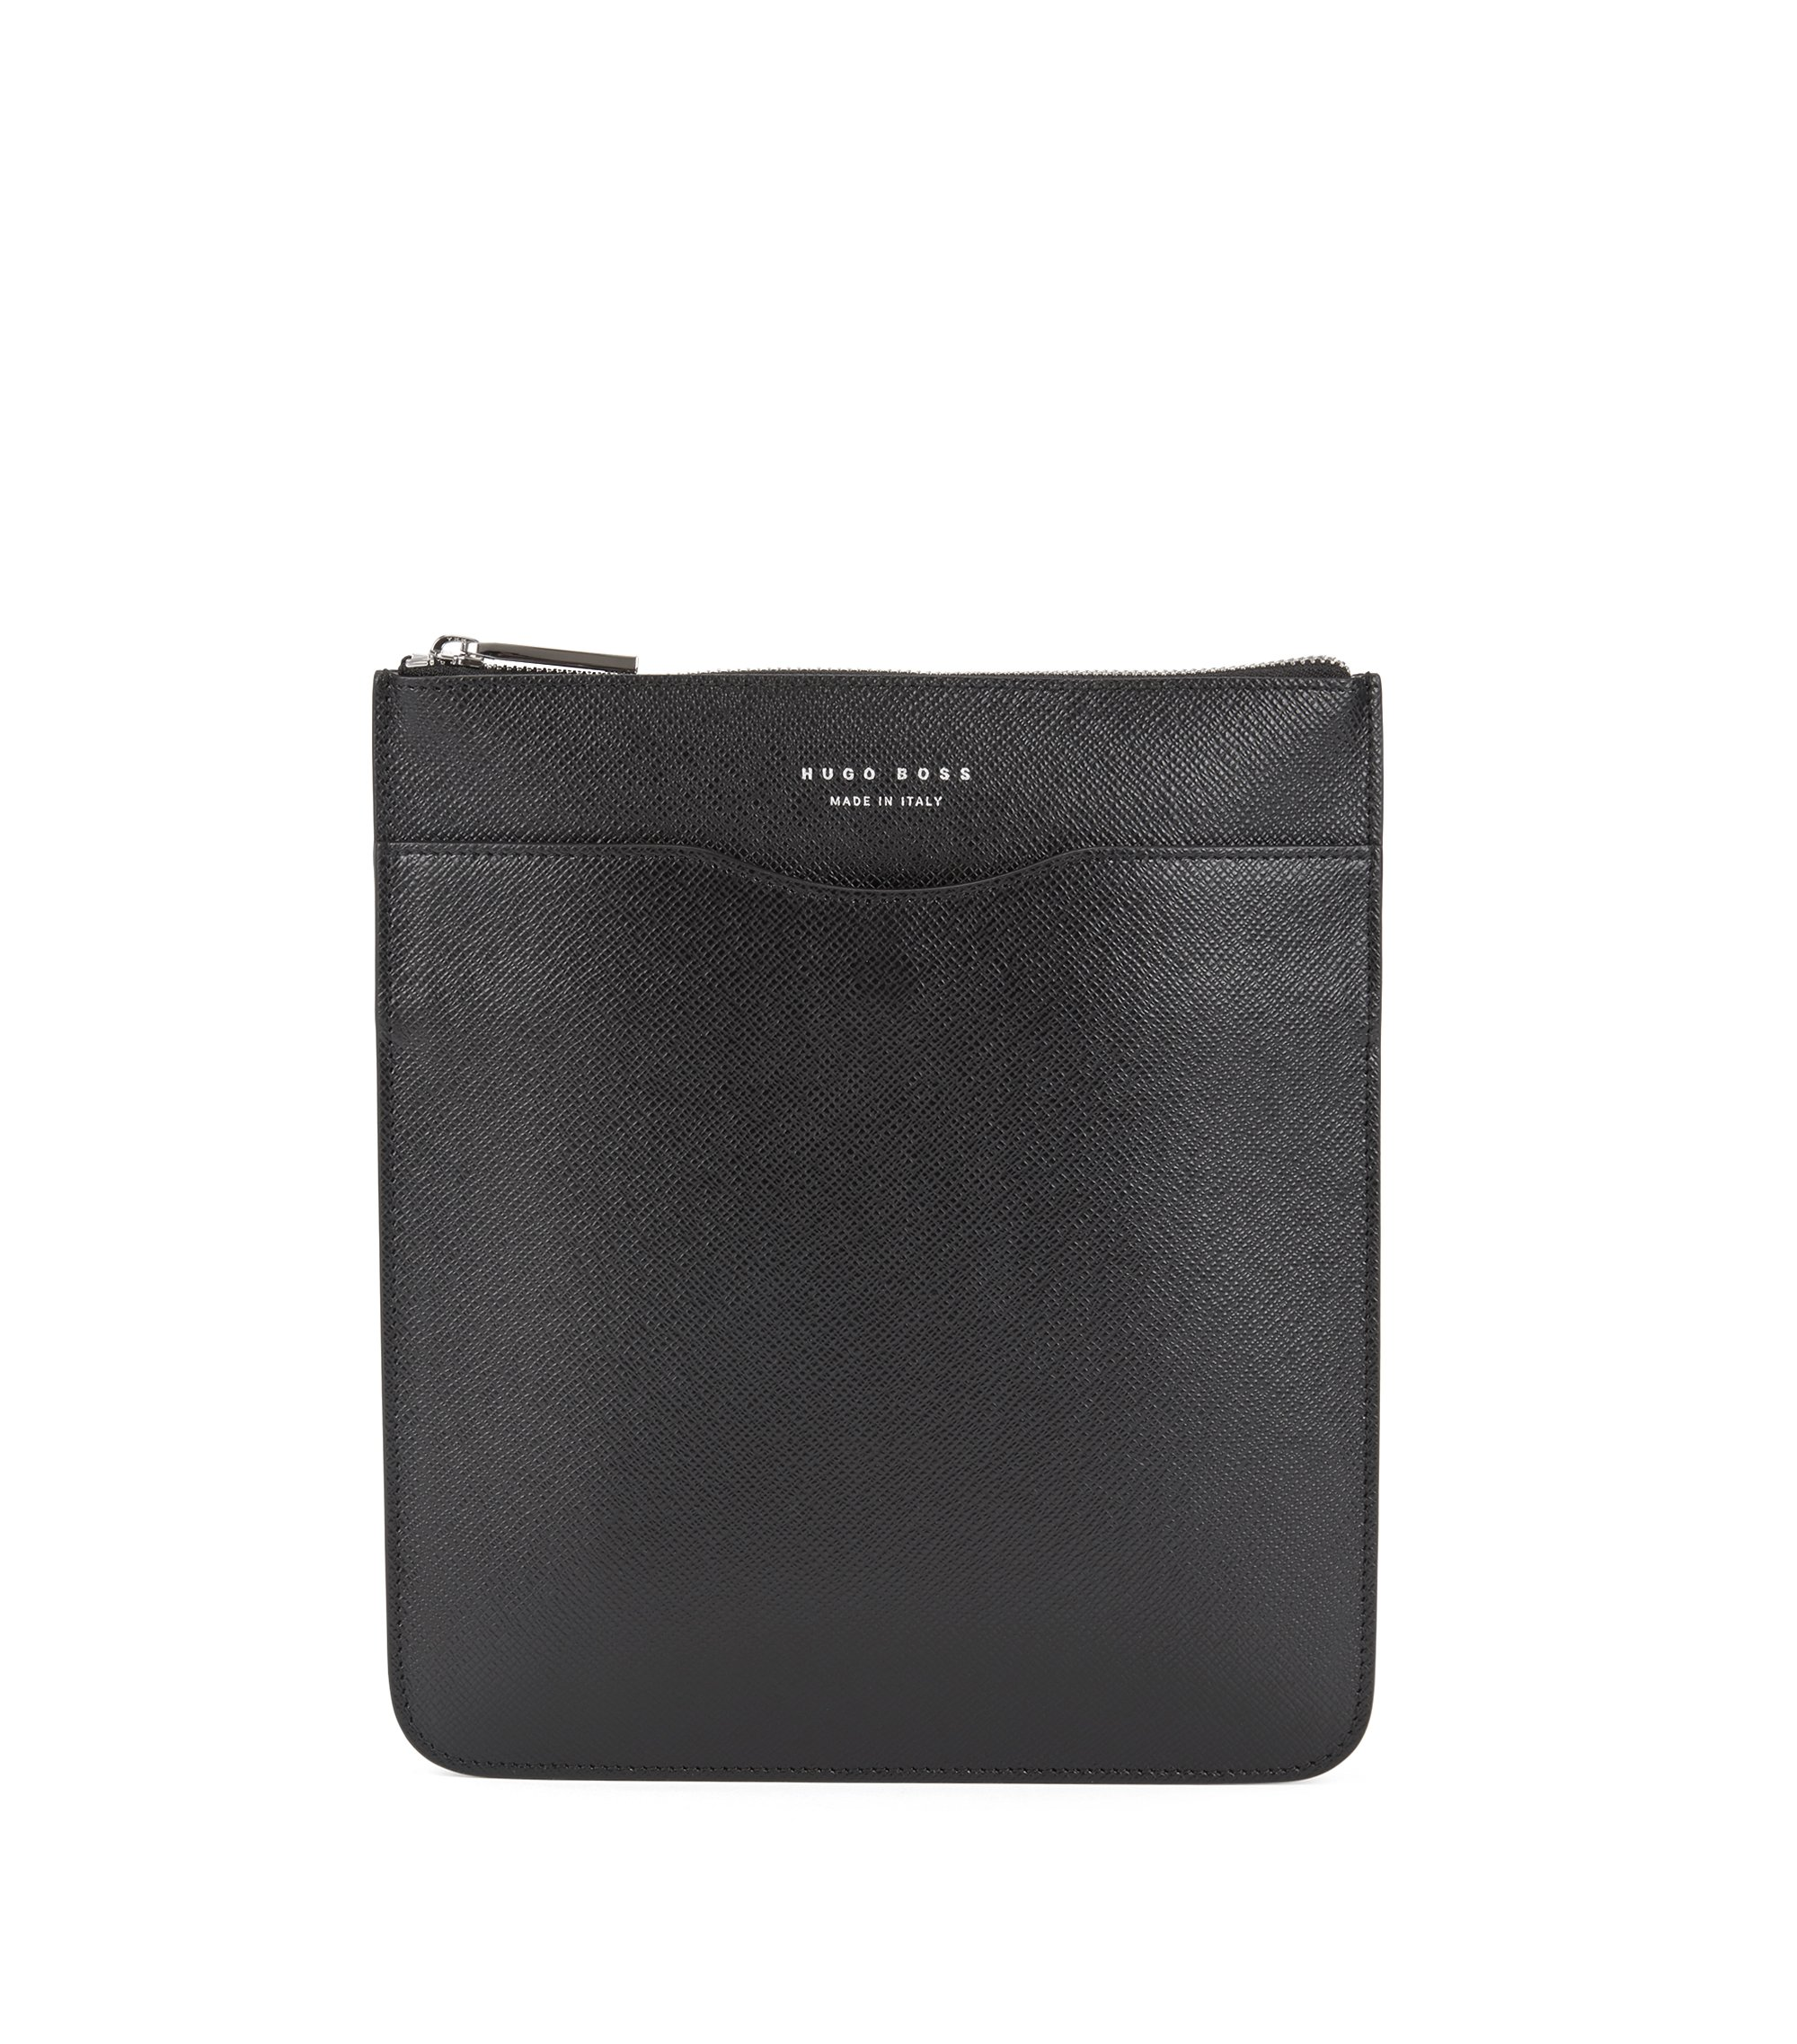 Signature Collection envelope bag in printed Italian calf leather, Black